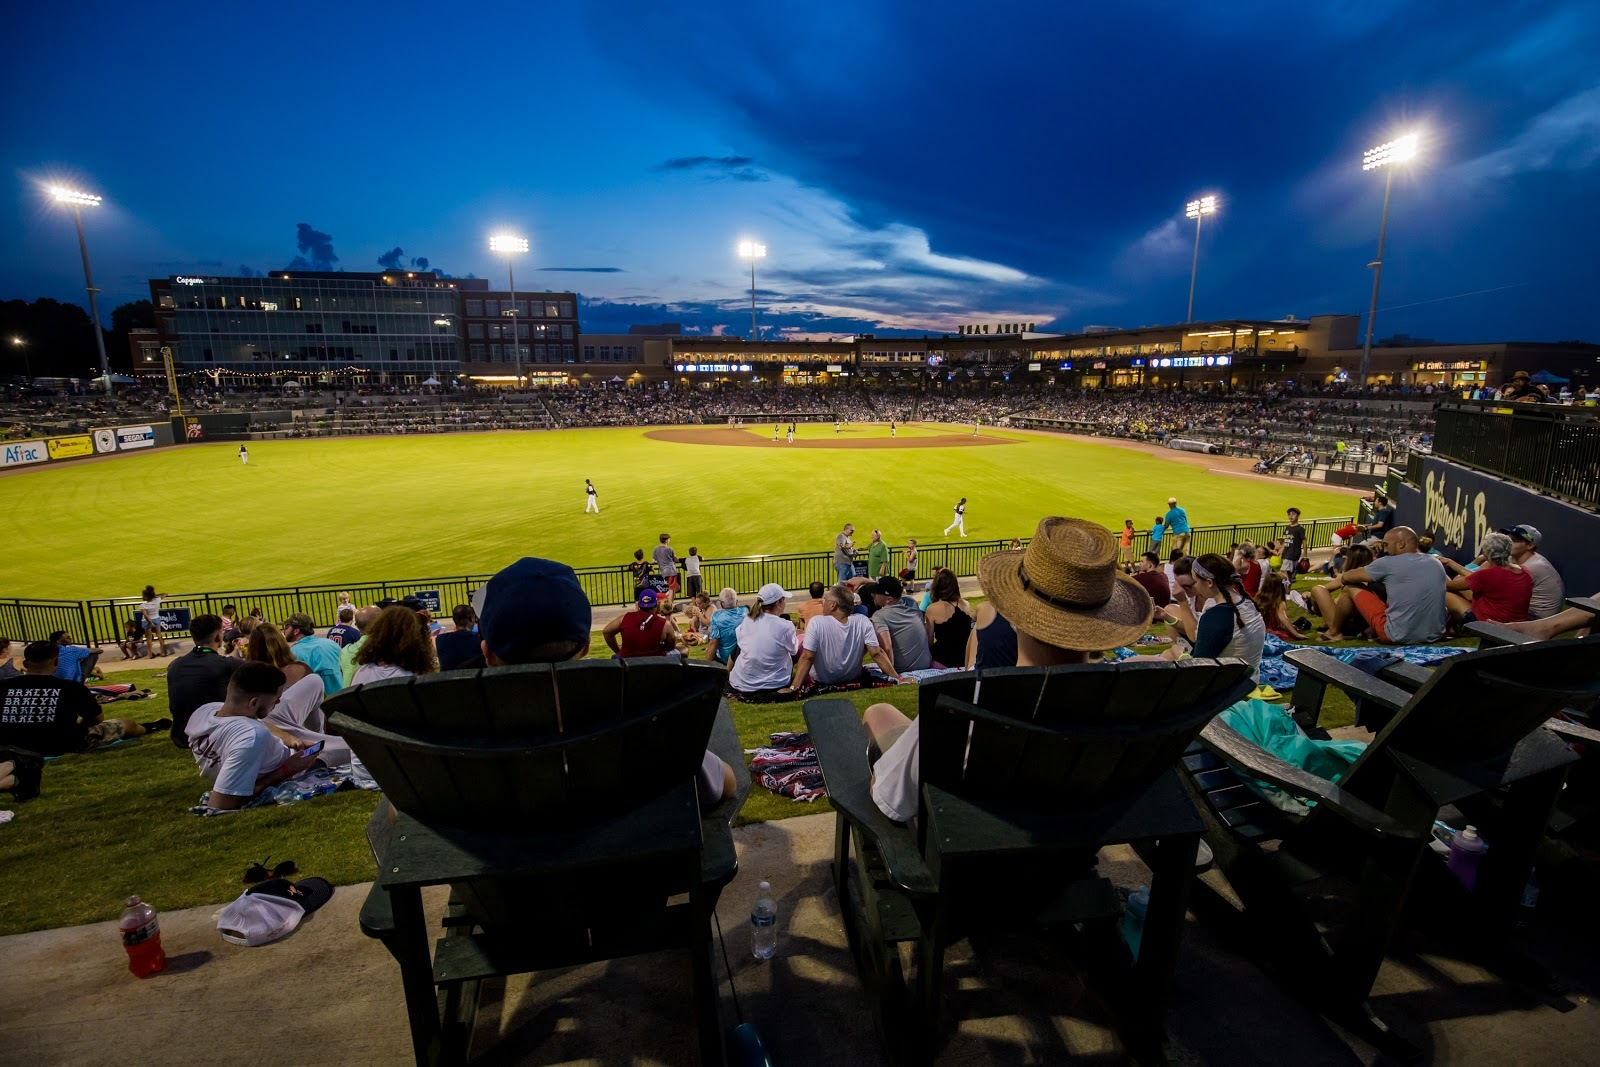 Photo of a crowd of people sitting in lawn chairs and on the grass in front of a baseball stadium at night.